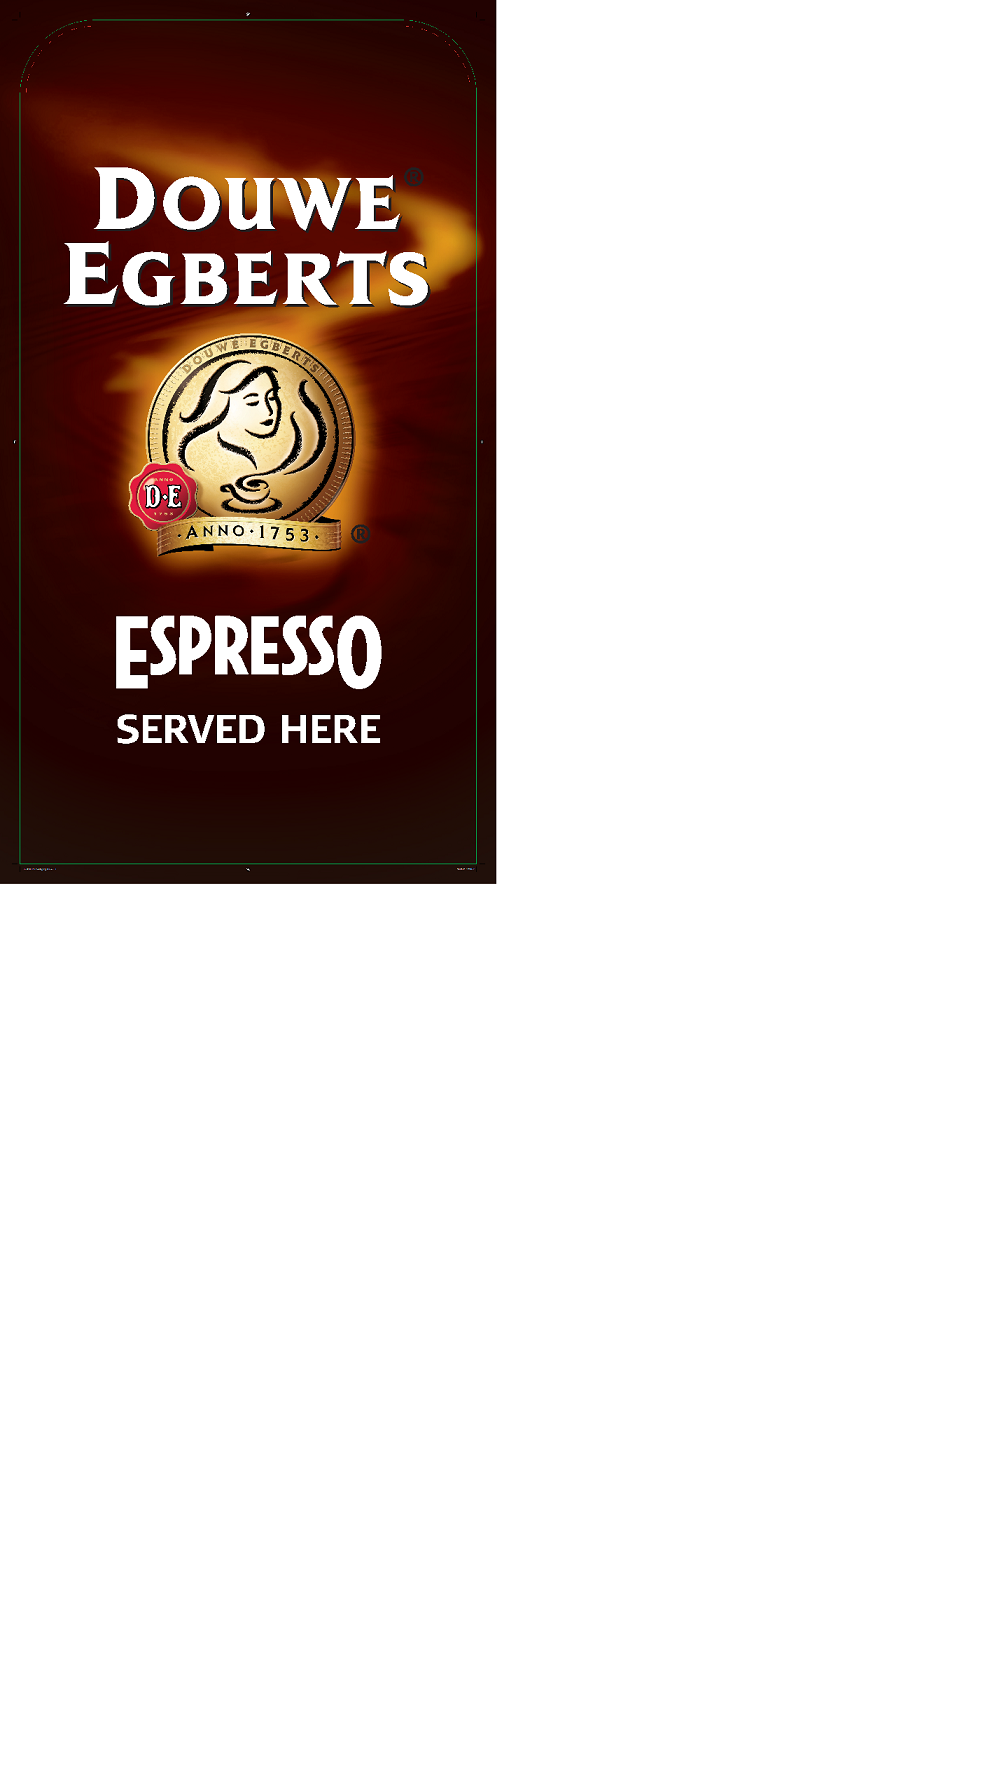 Douwe Egberts Espresso Pavement Sign